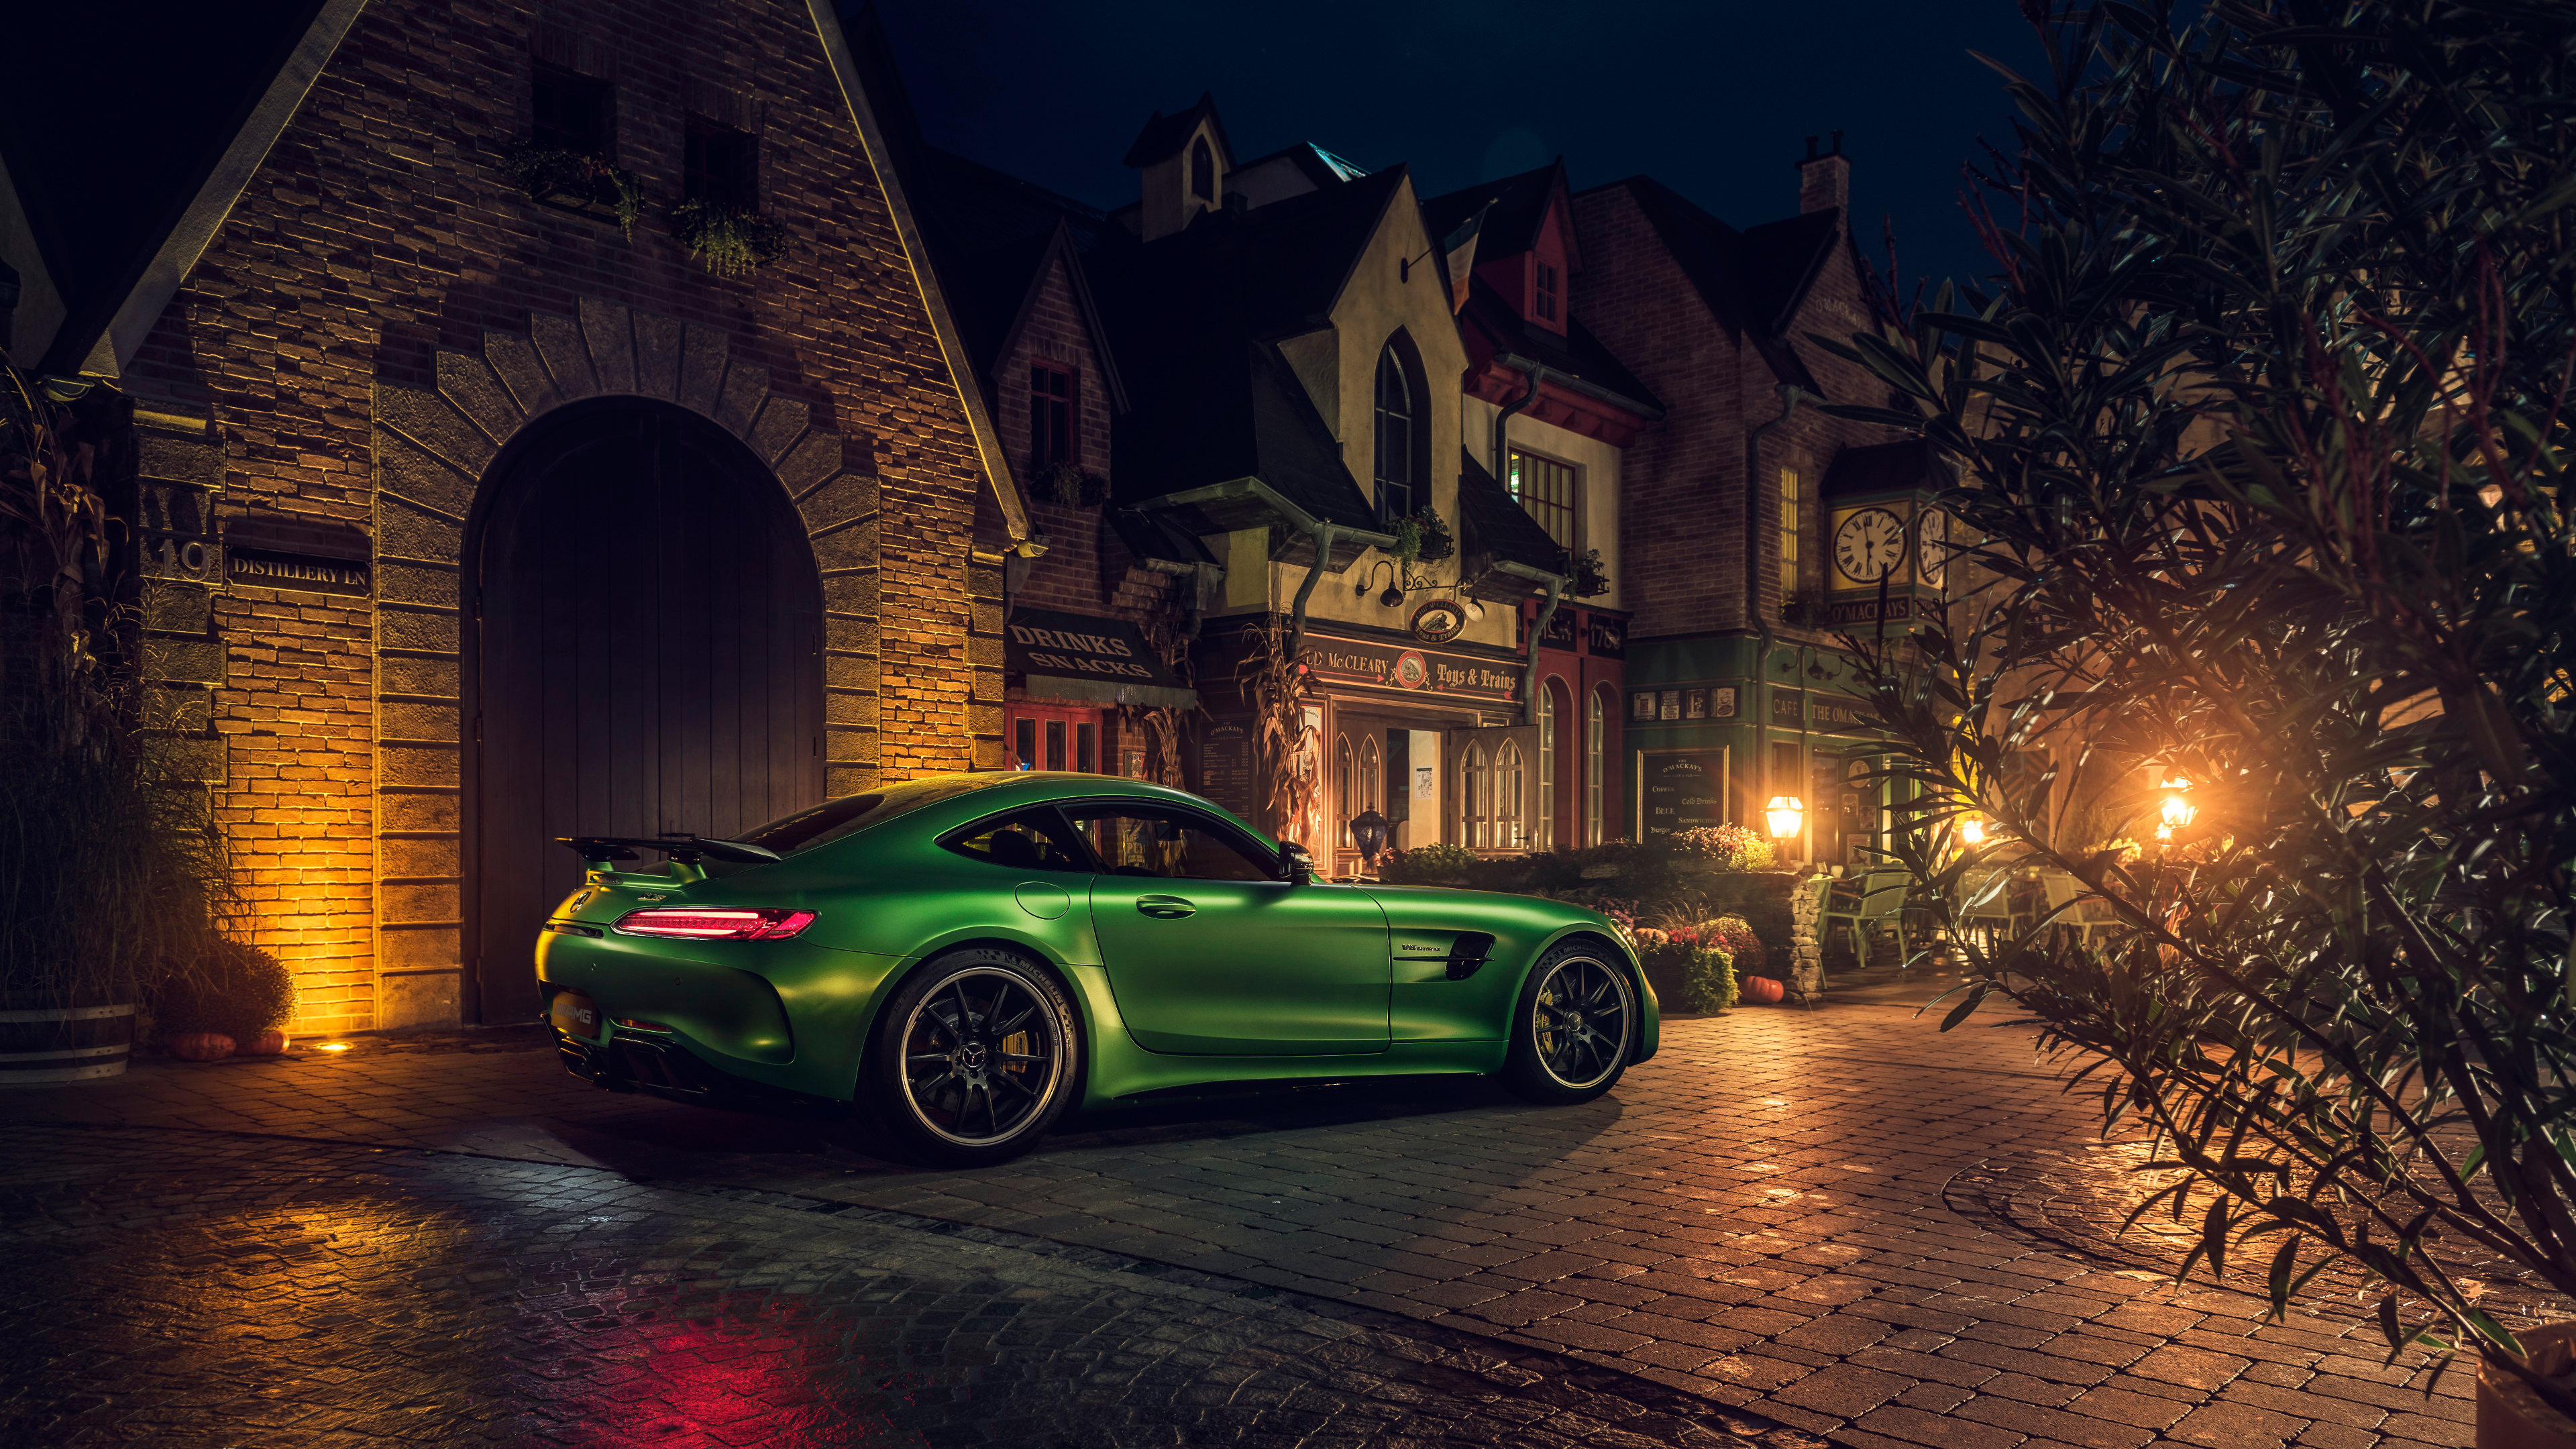 Green Mercedes Amg Gt R Rear 4k Hd Cars 4k Wallpapers